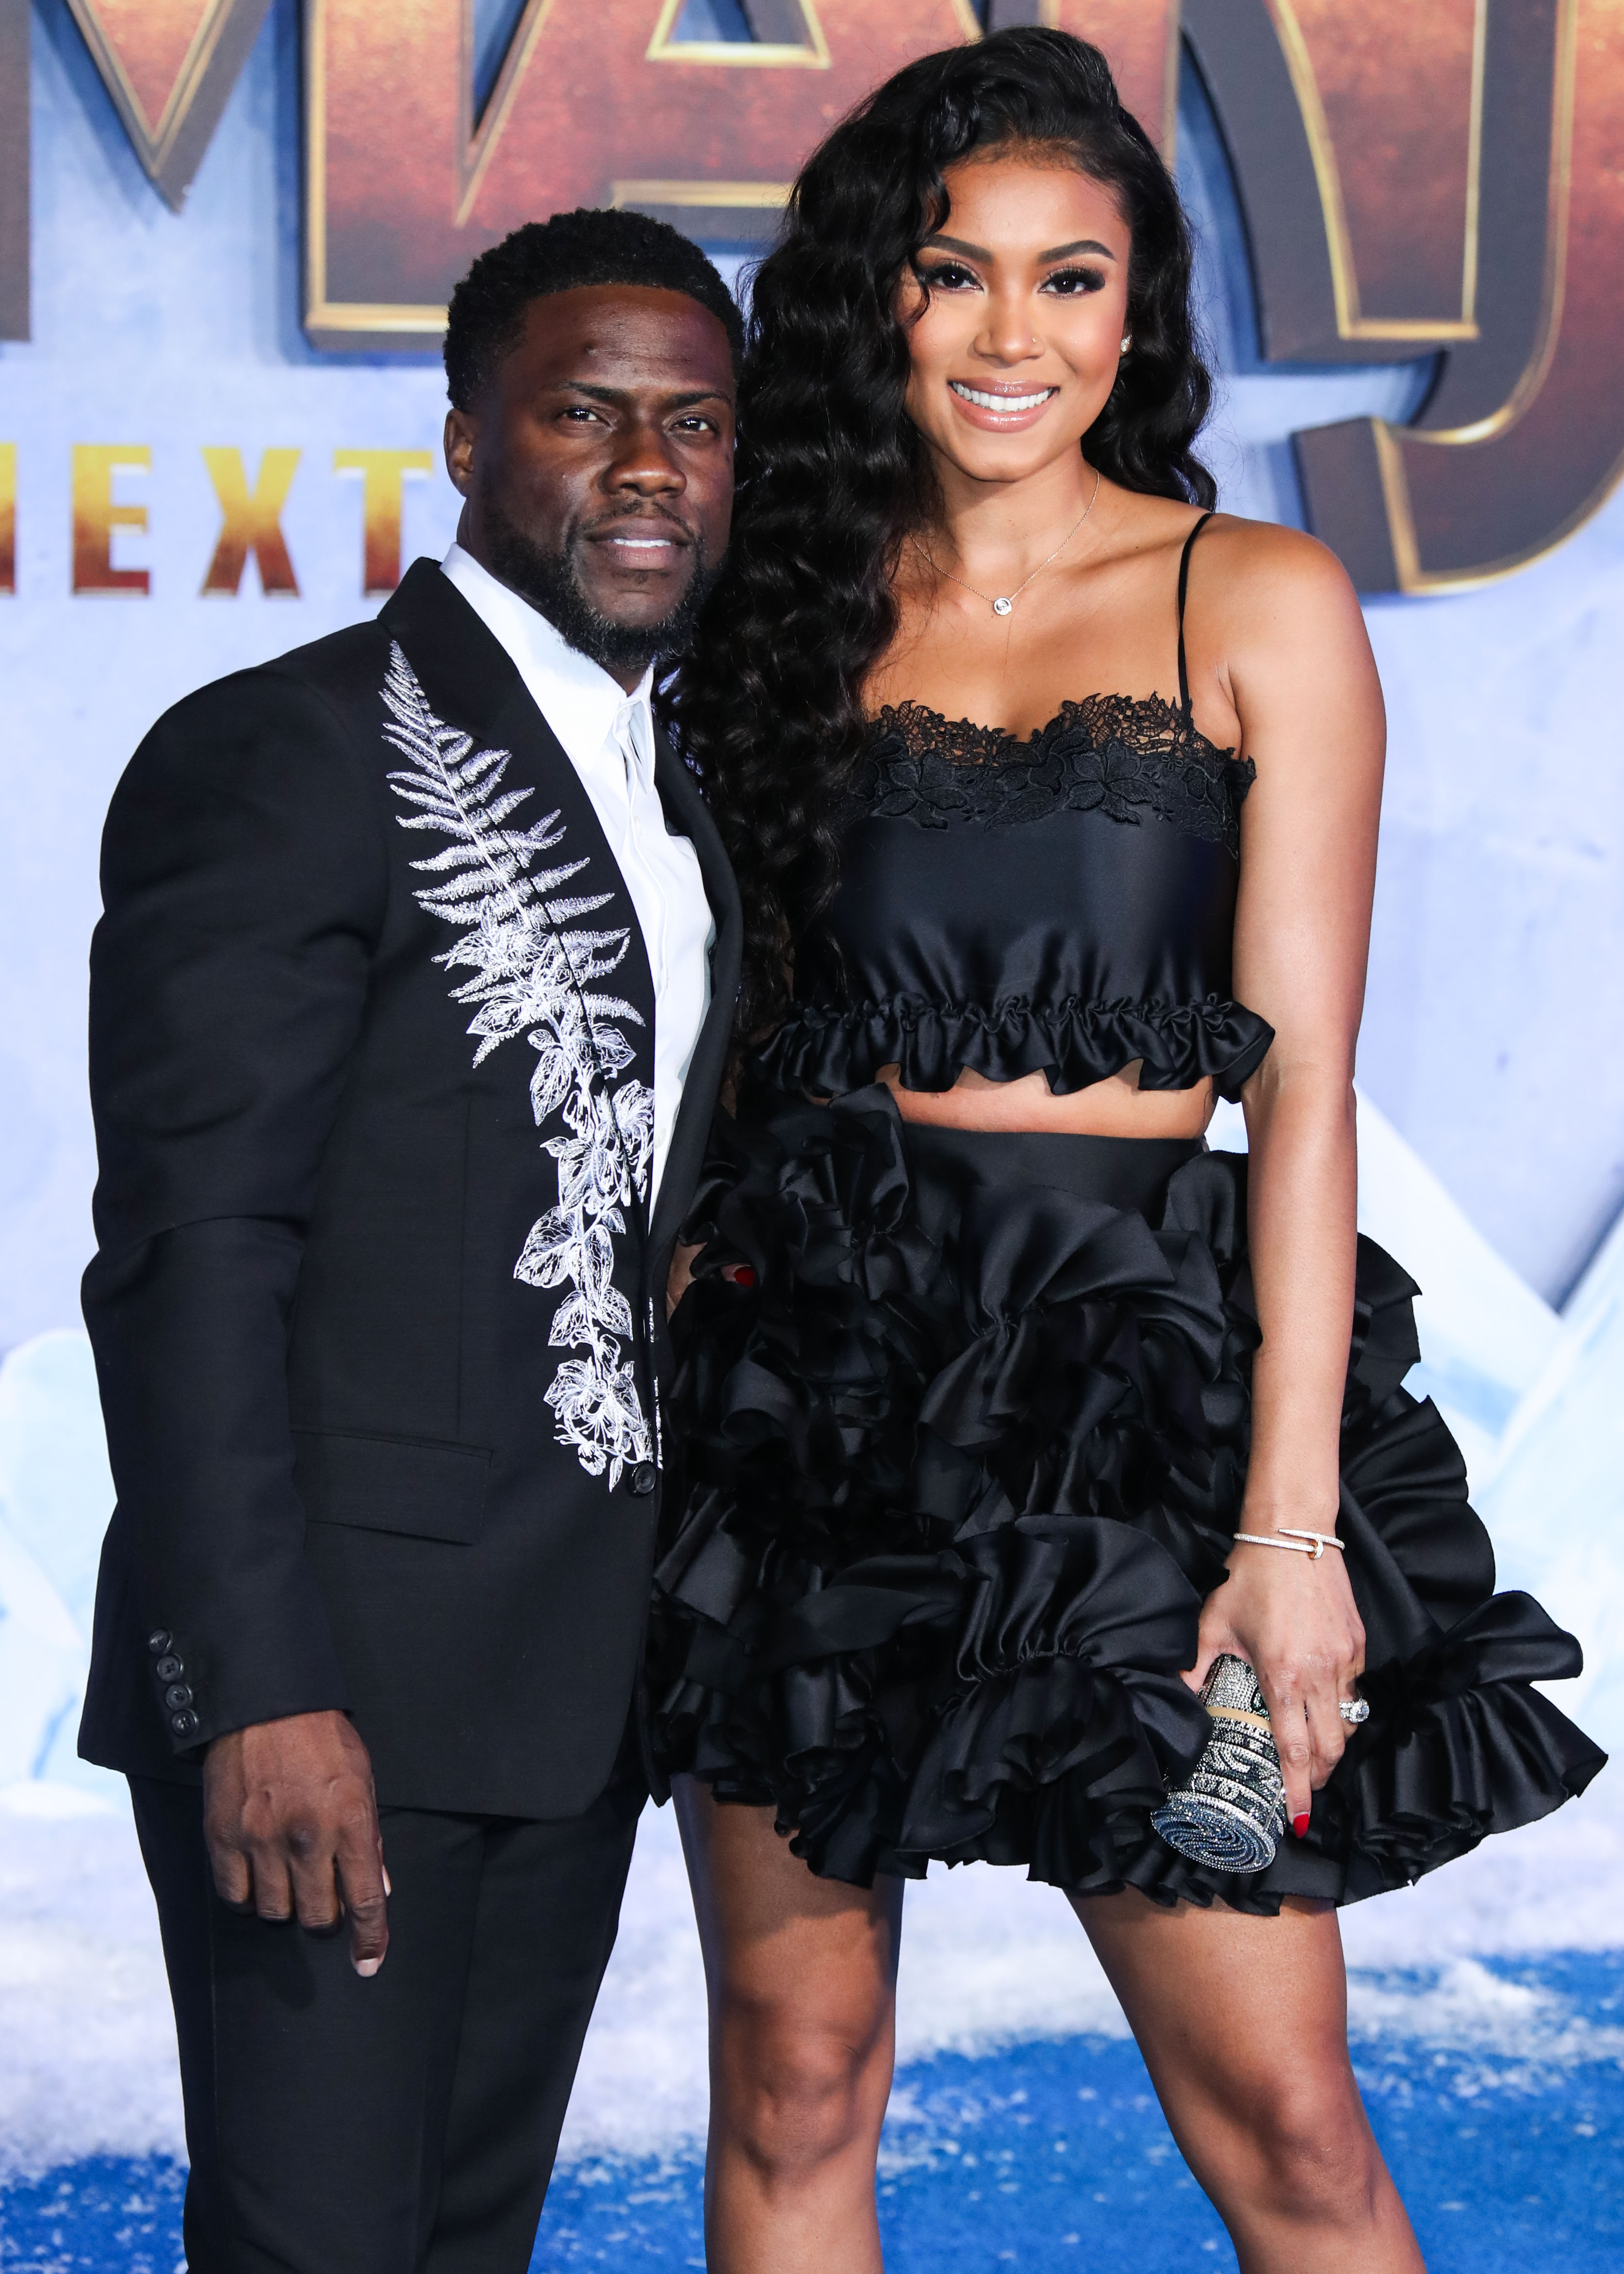 Kevin Hart and Eniko Hart at his premiere for Jumanji